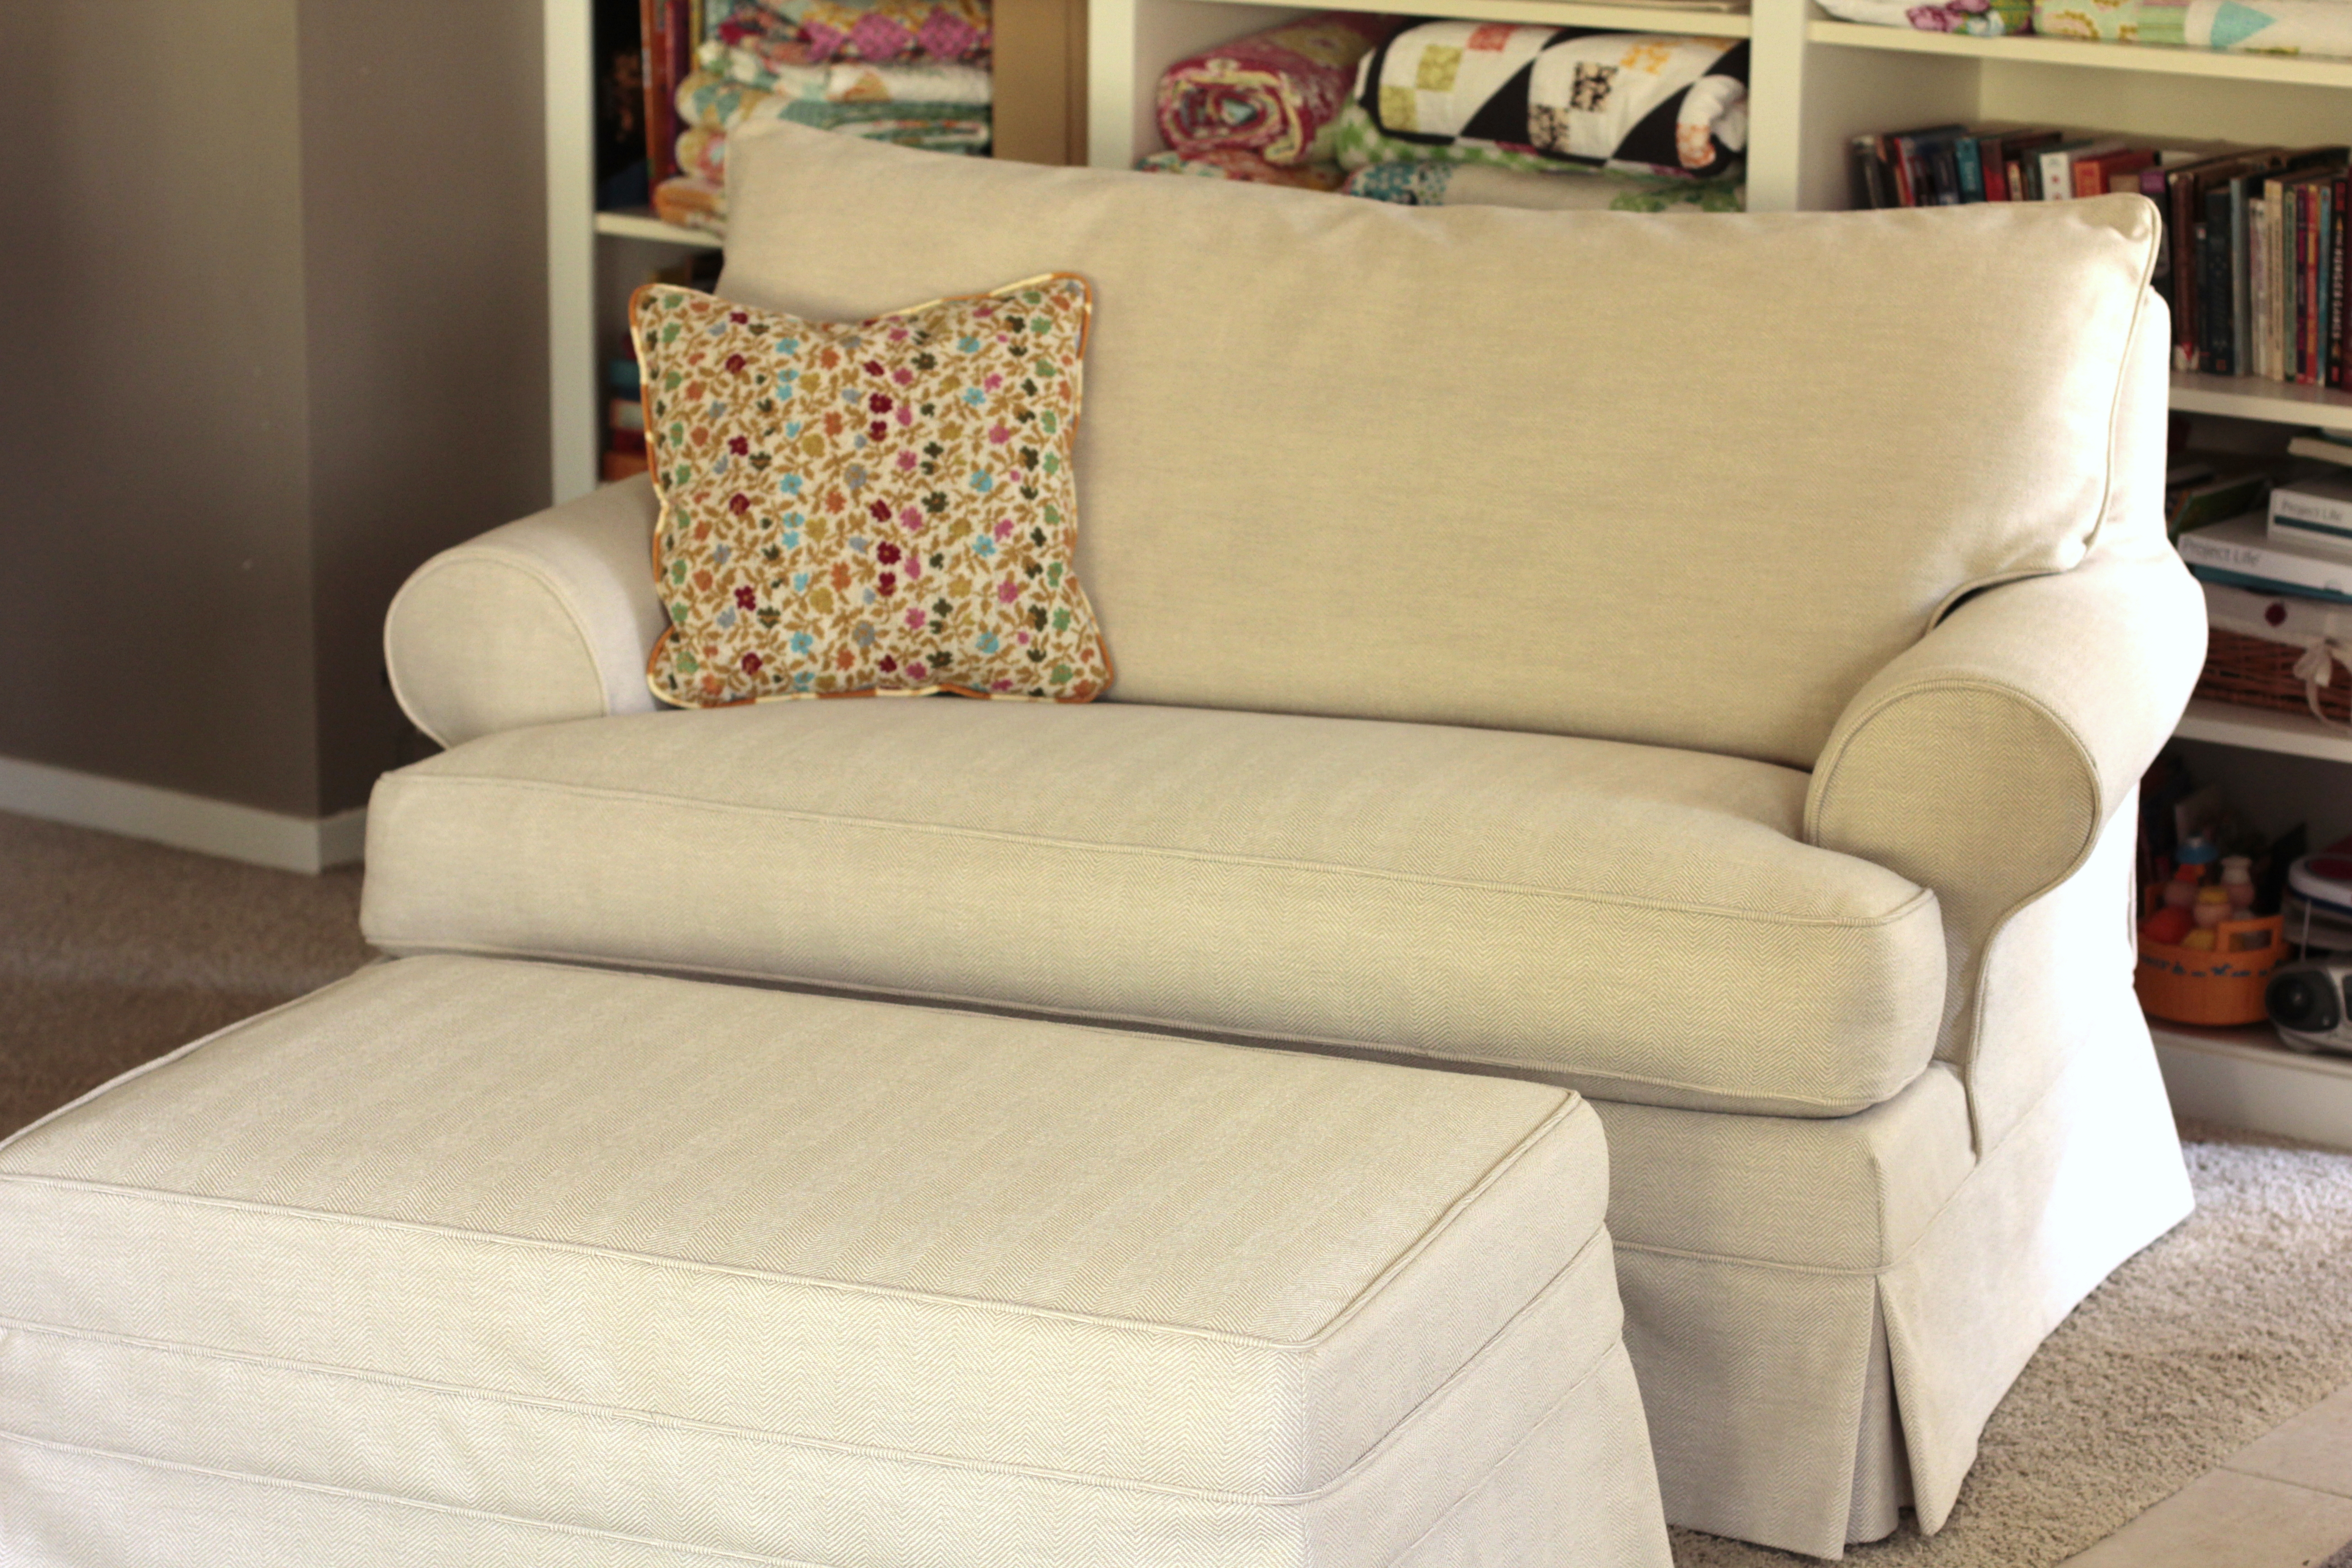 Loveseat Slipcover -after